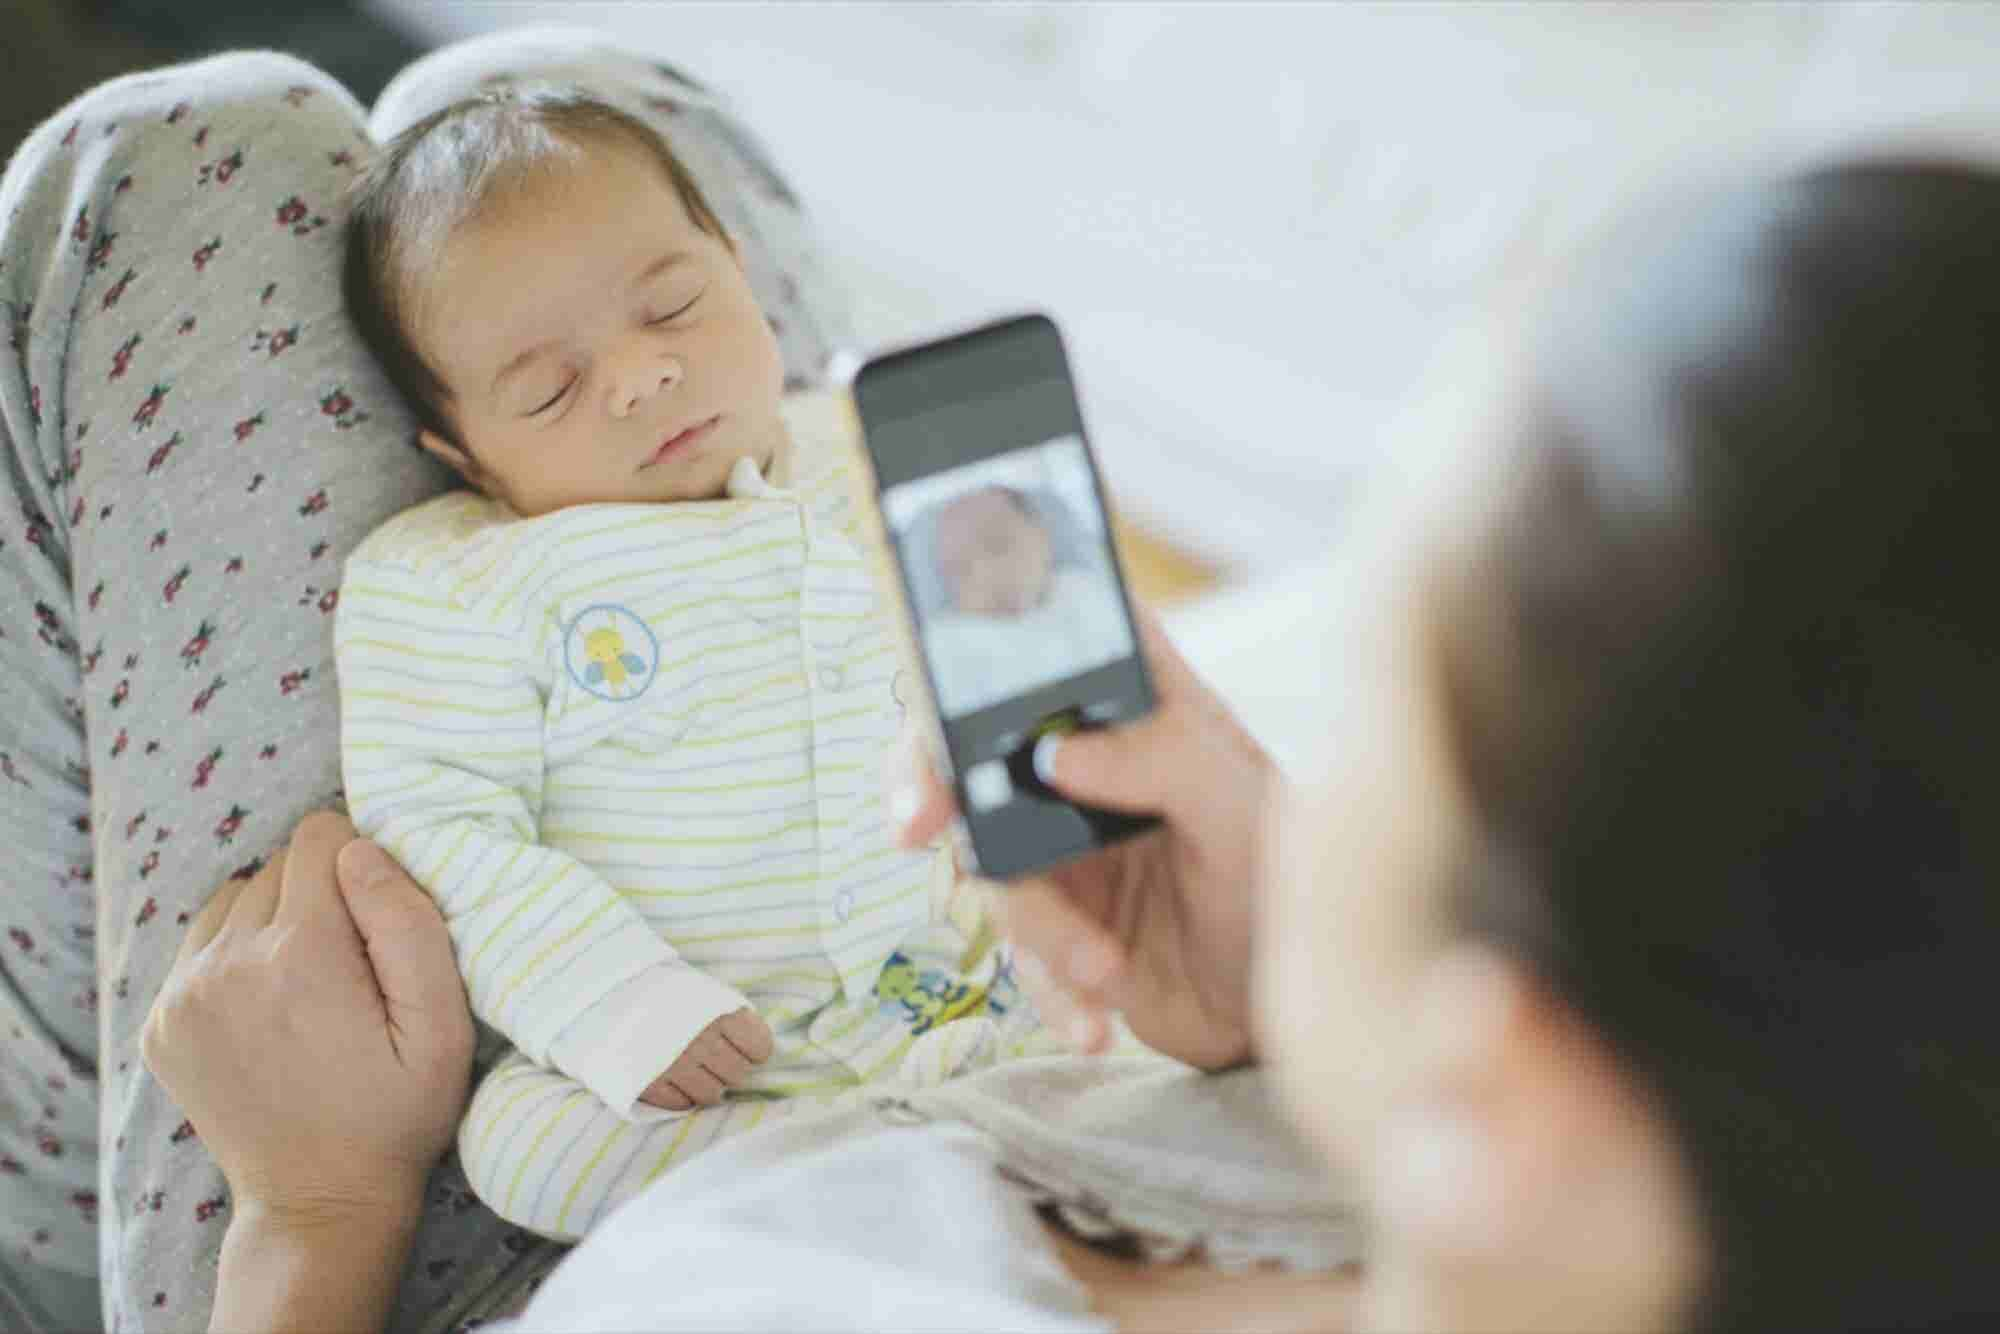 A New Study Explains Why Your Facebook Friends Keep Sharing Pictures of Their Kids -- Start Up Your Day Roundup